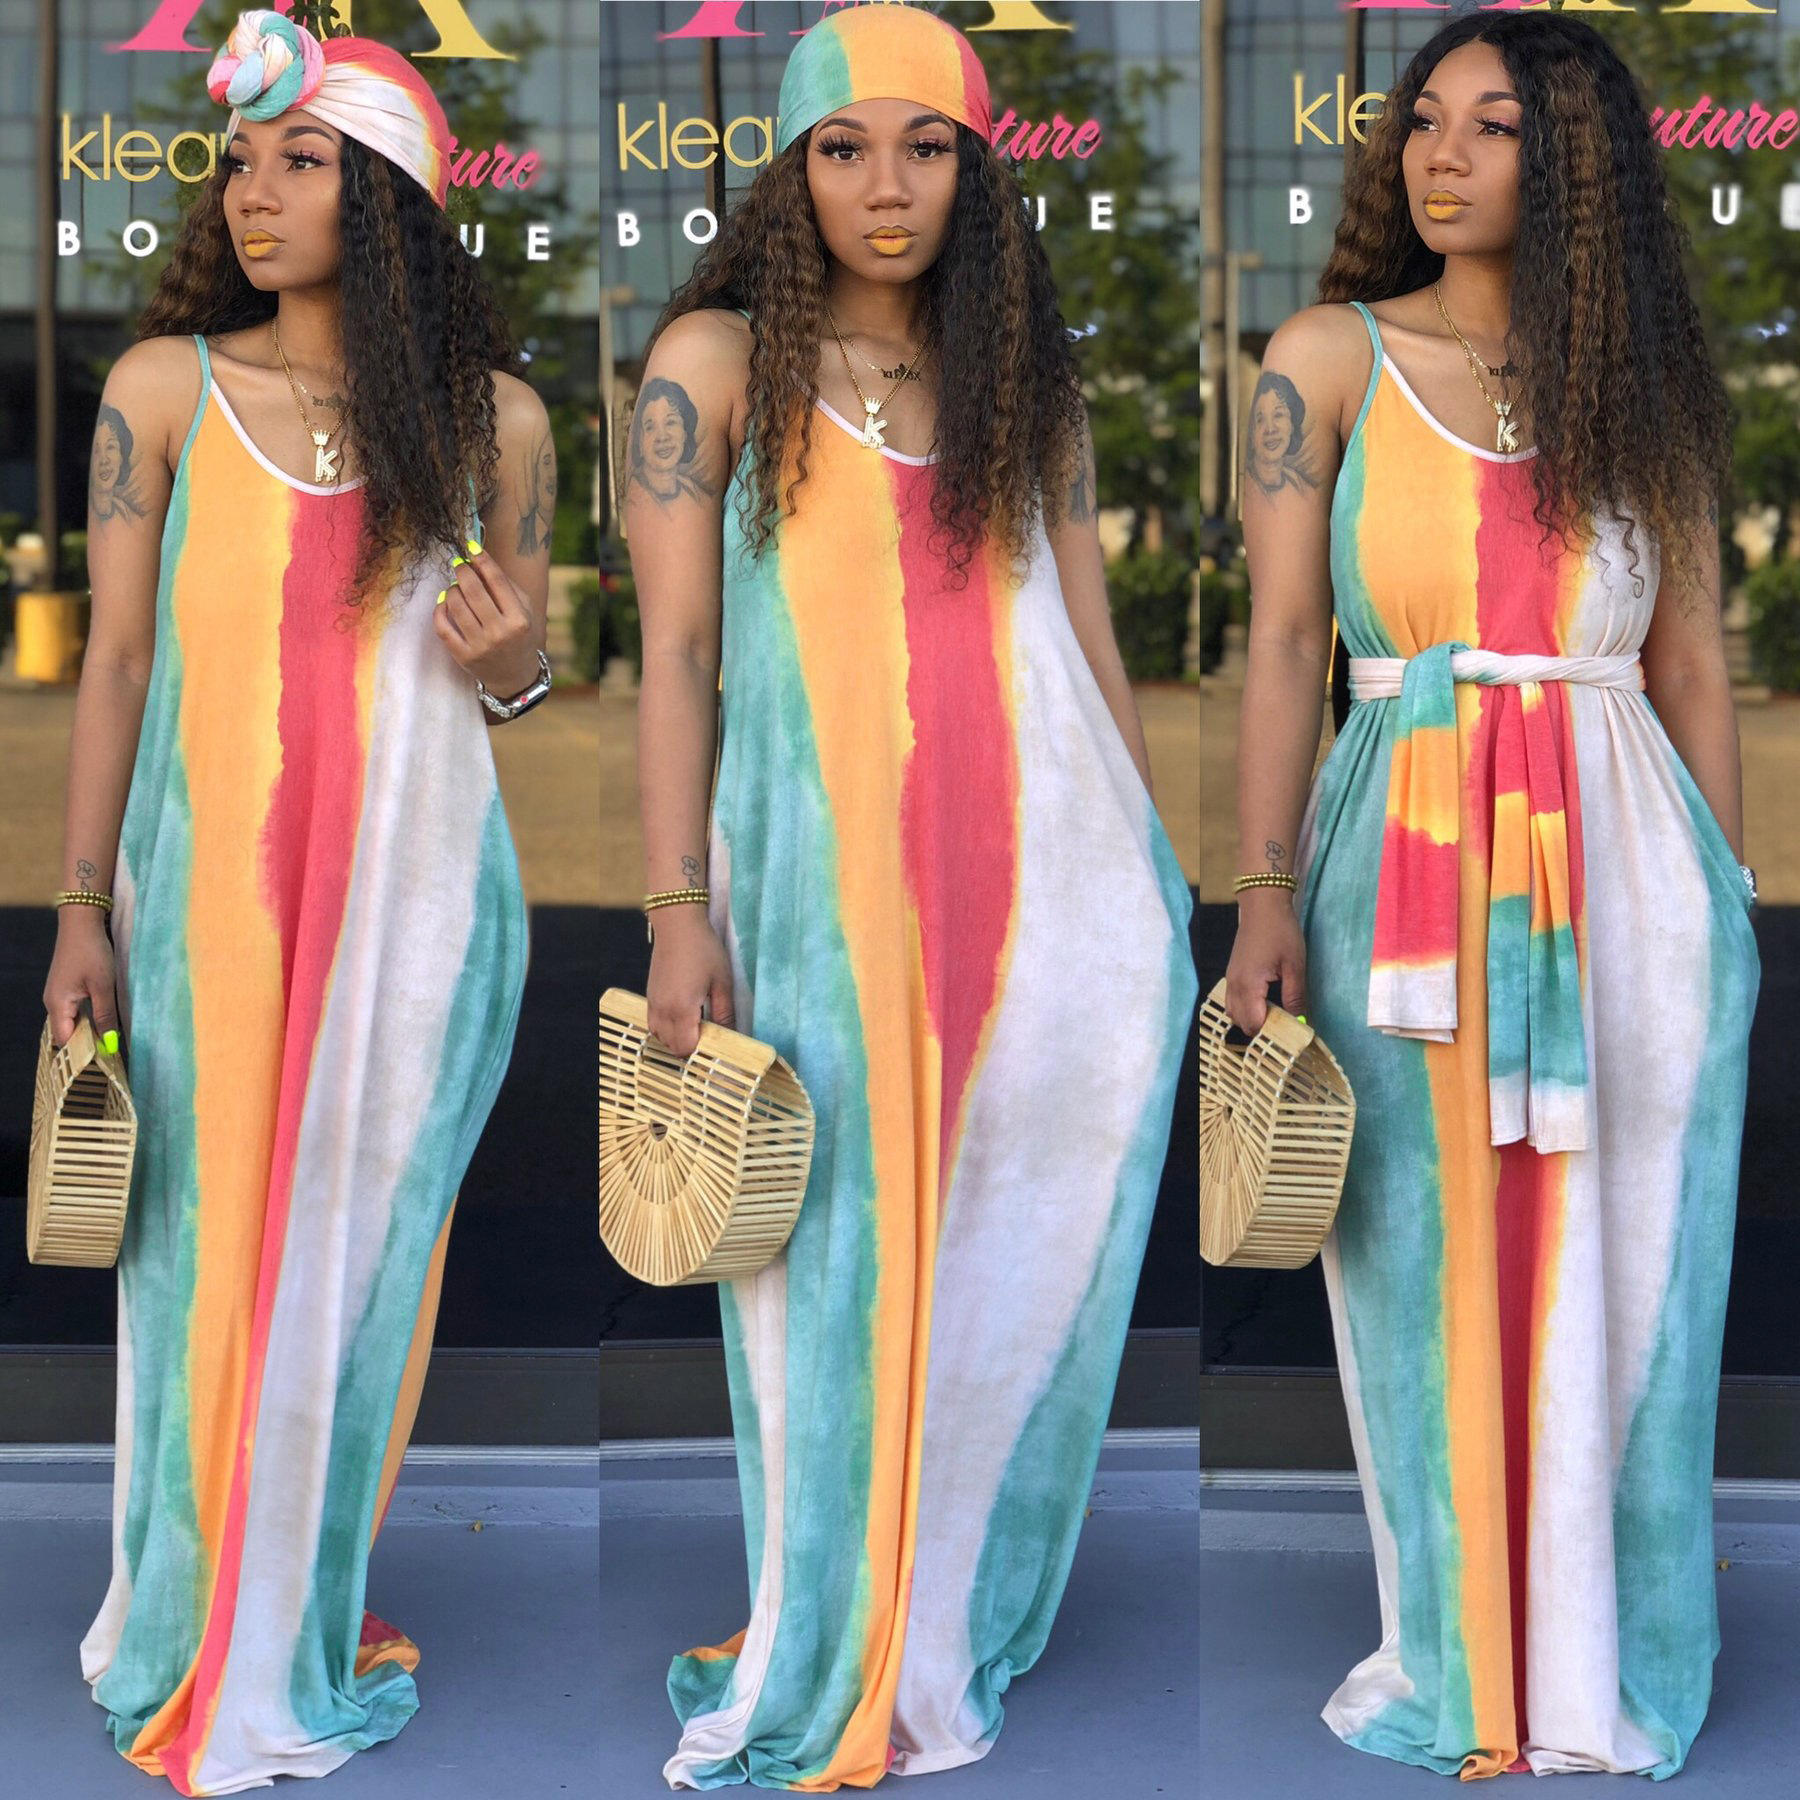 2020 Women's Plus Size Summer Dress Spaghetti Straps Dress Striped Colorful Long Casual Maxi Dress